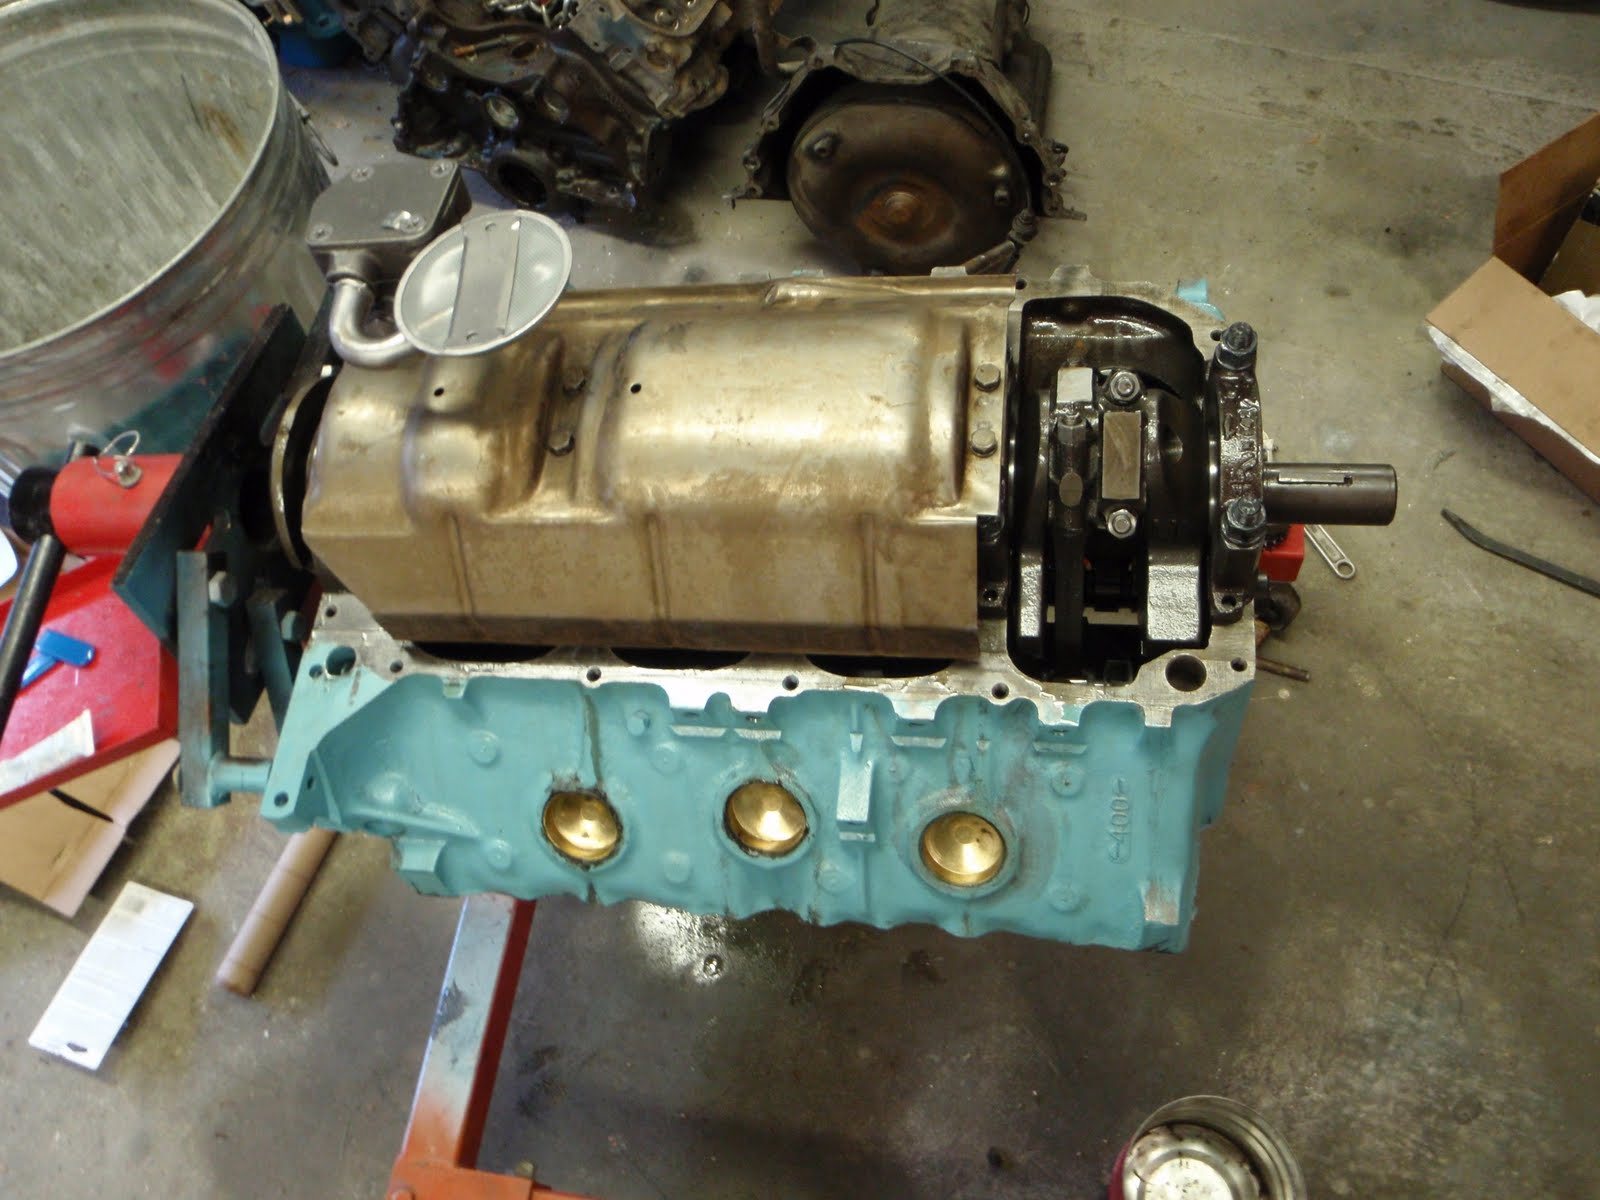 The Cynical Gearhead 400 Cubic Inch Pontiac Buildup Part 3 Engine Oil Its A Cleaned Up Stockerthe Pump Was Installed With Proper Gasket And Torqued To 30 Ft Lbs